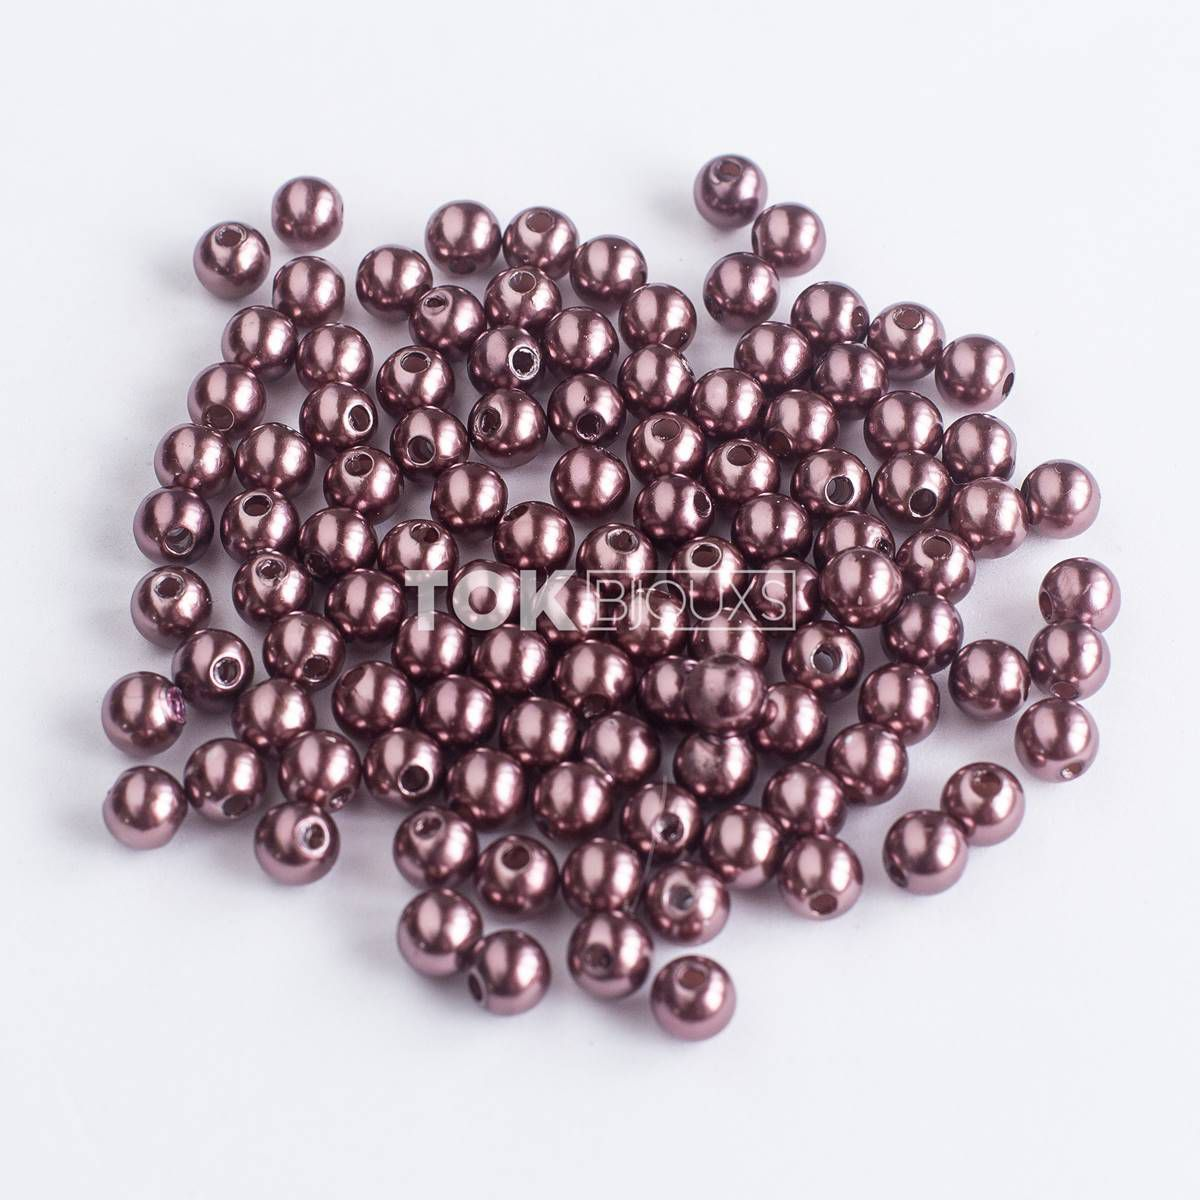 Pérola Redonda 4mm - Marron - 25g